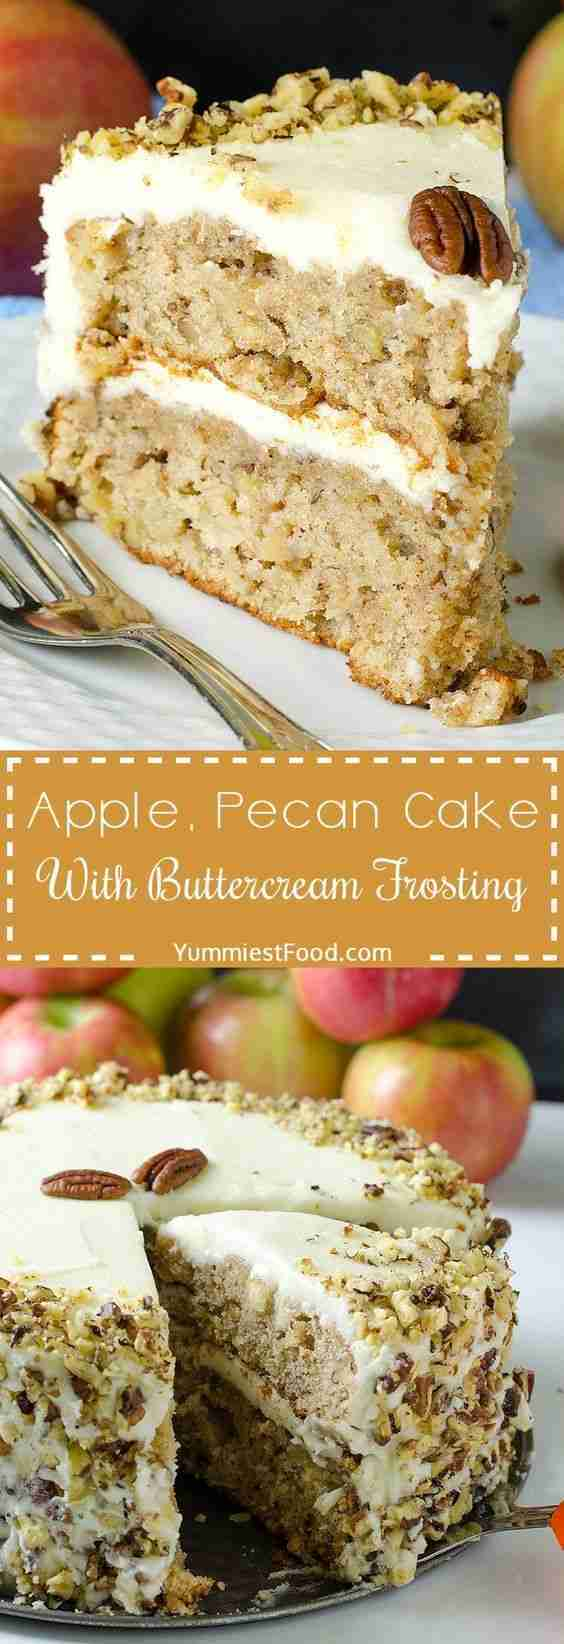 Apple, Pecan Cake With Buttercream Frosting